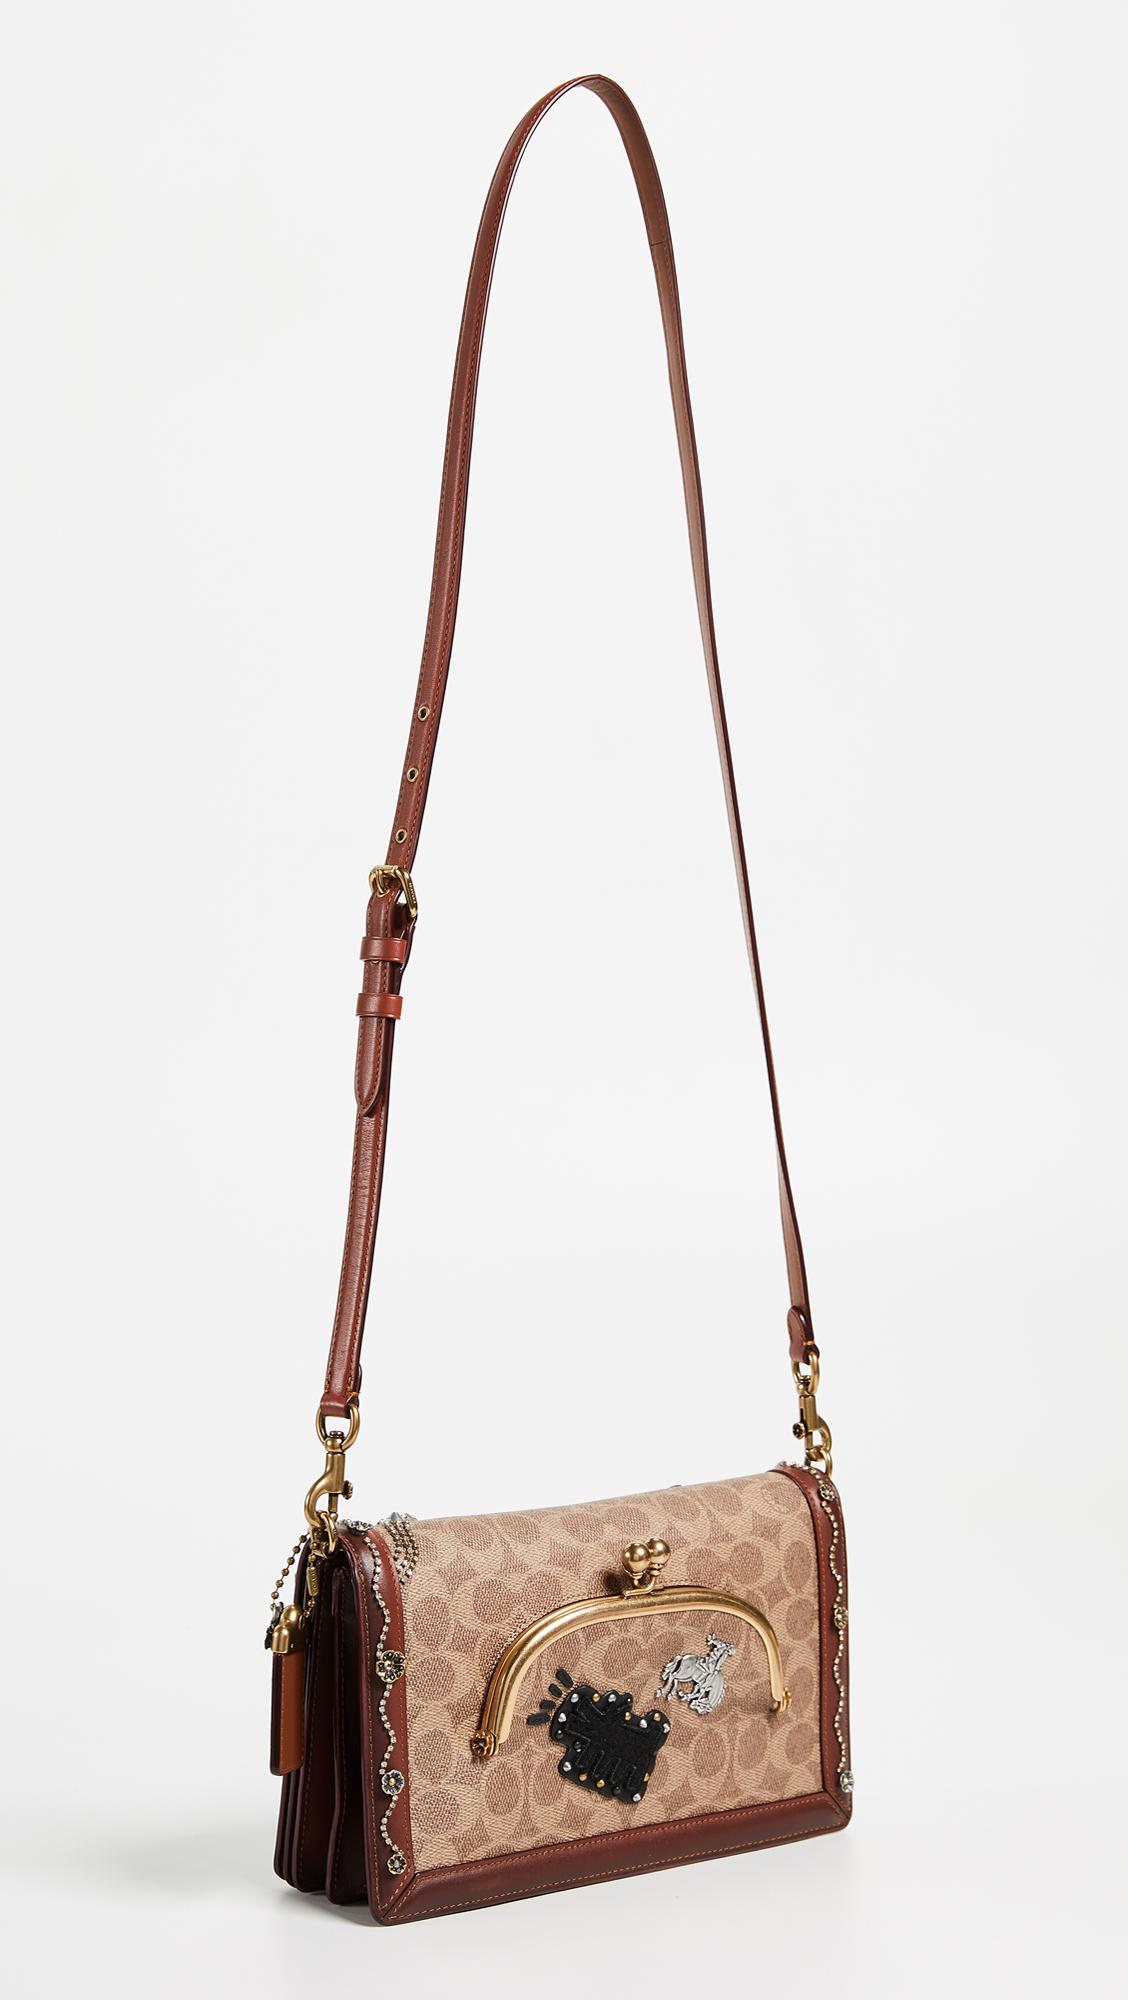 COACH Canvas Signature Embellished Cross Body Bag